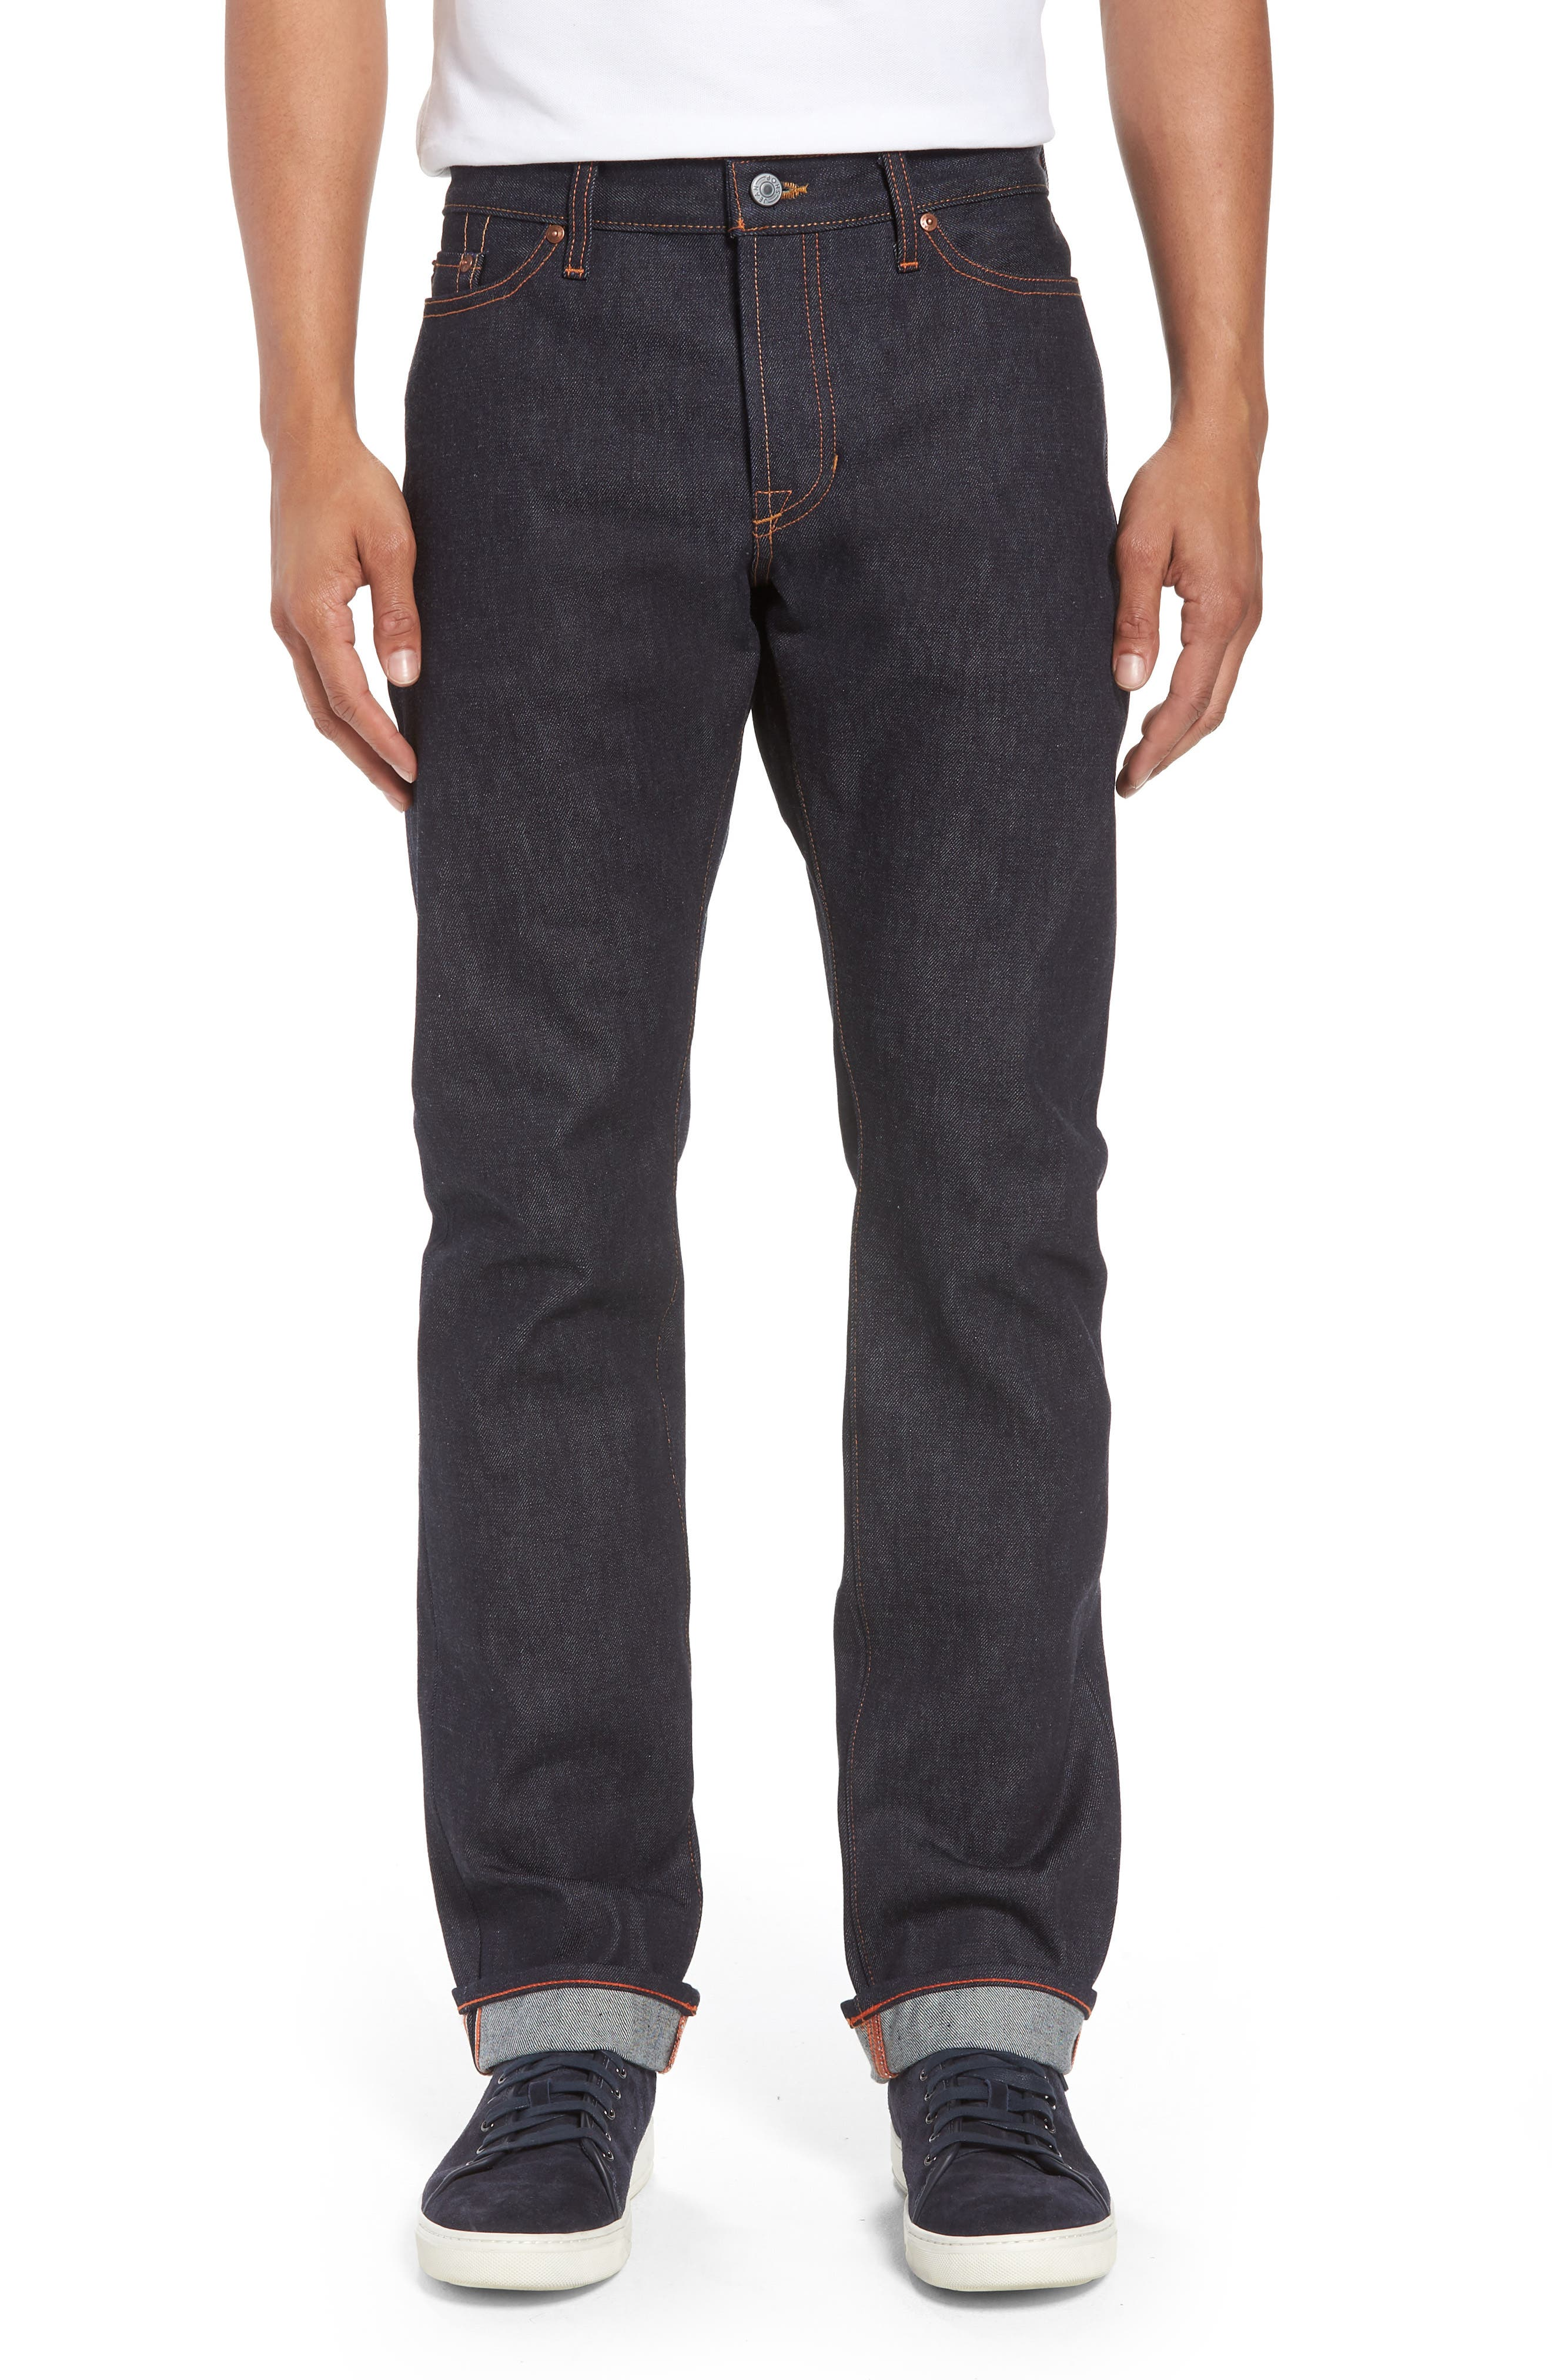 Bowie Slim Straight Leg Jeans,                             Main thumbnail 1, color,                             Raw